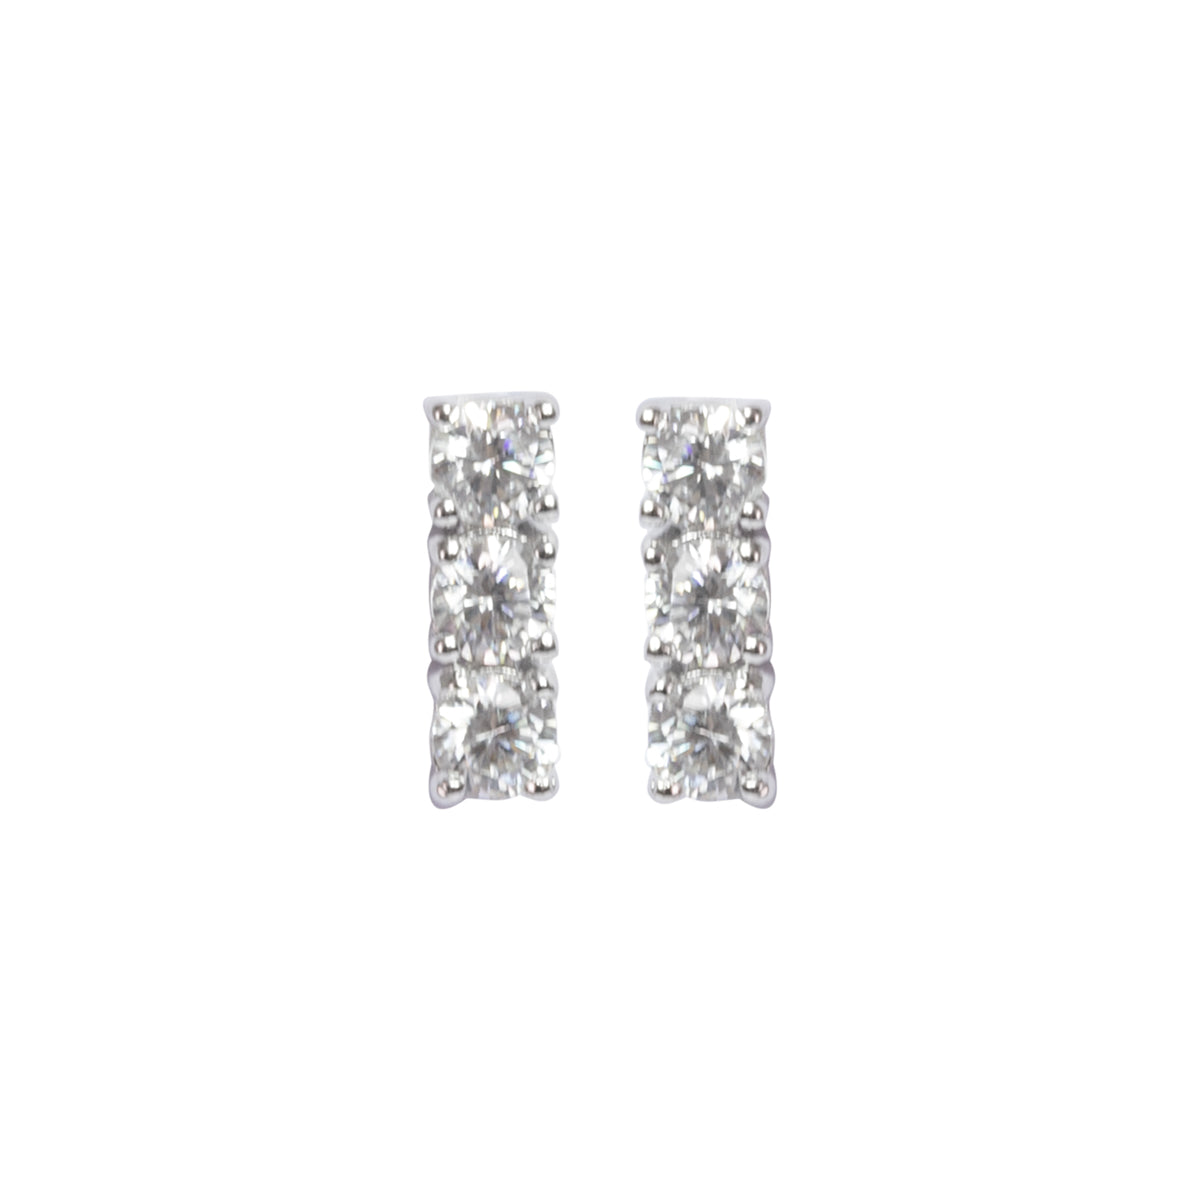 Trilogy sparkle earrings